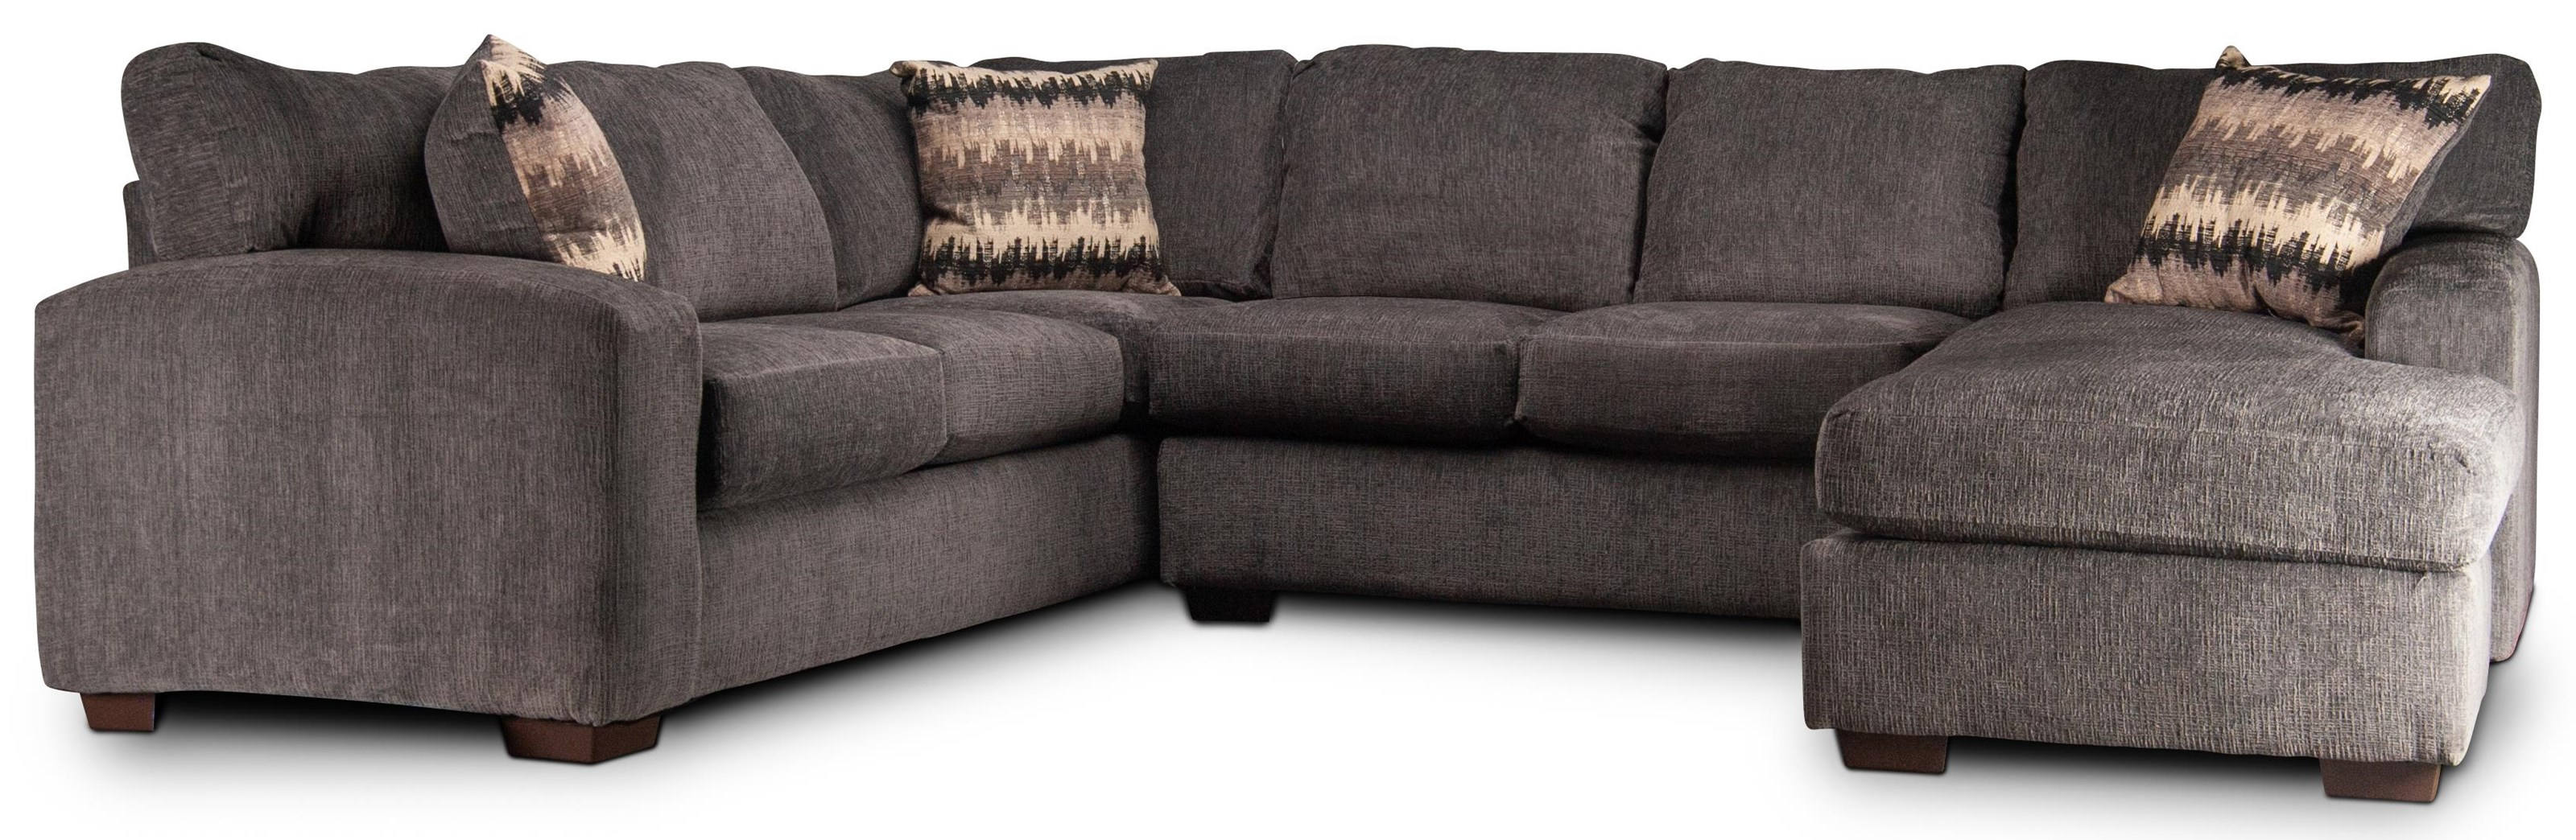 Cyndel Cyndel Sectional Couch with Accent Pillows by Peak Living at Morris Home